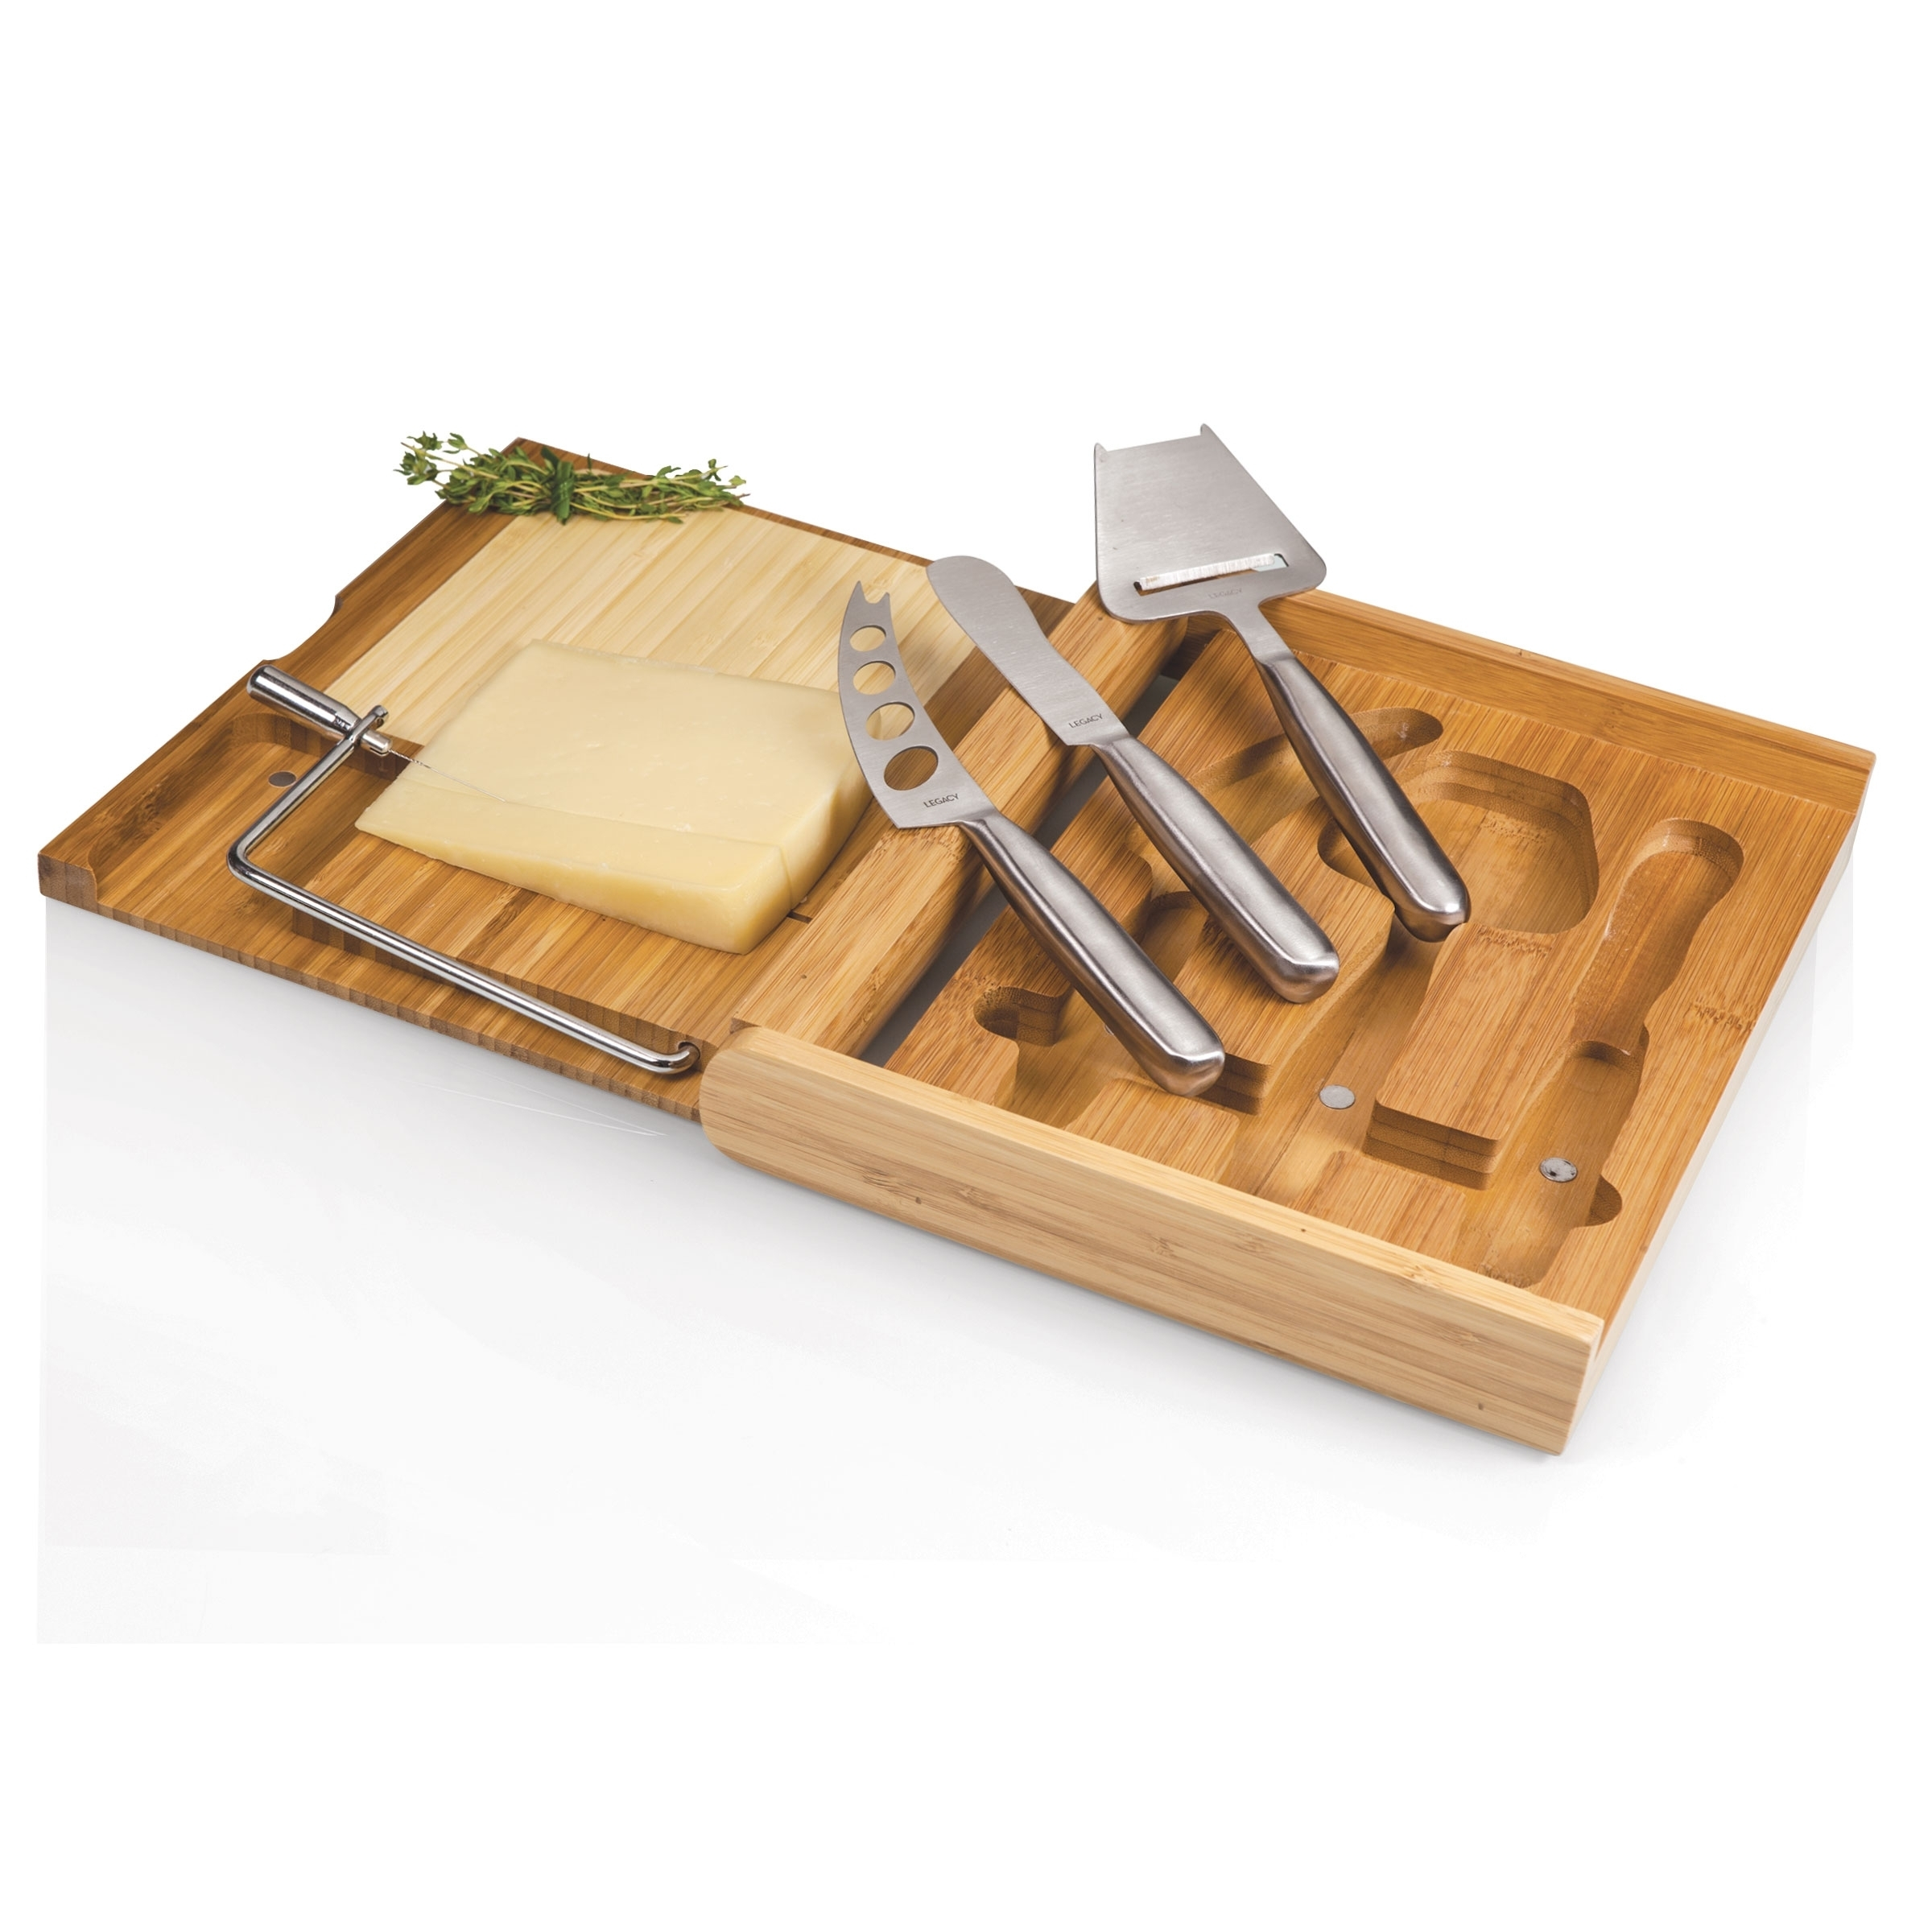 Soirée Cheese Board Set